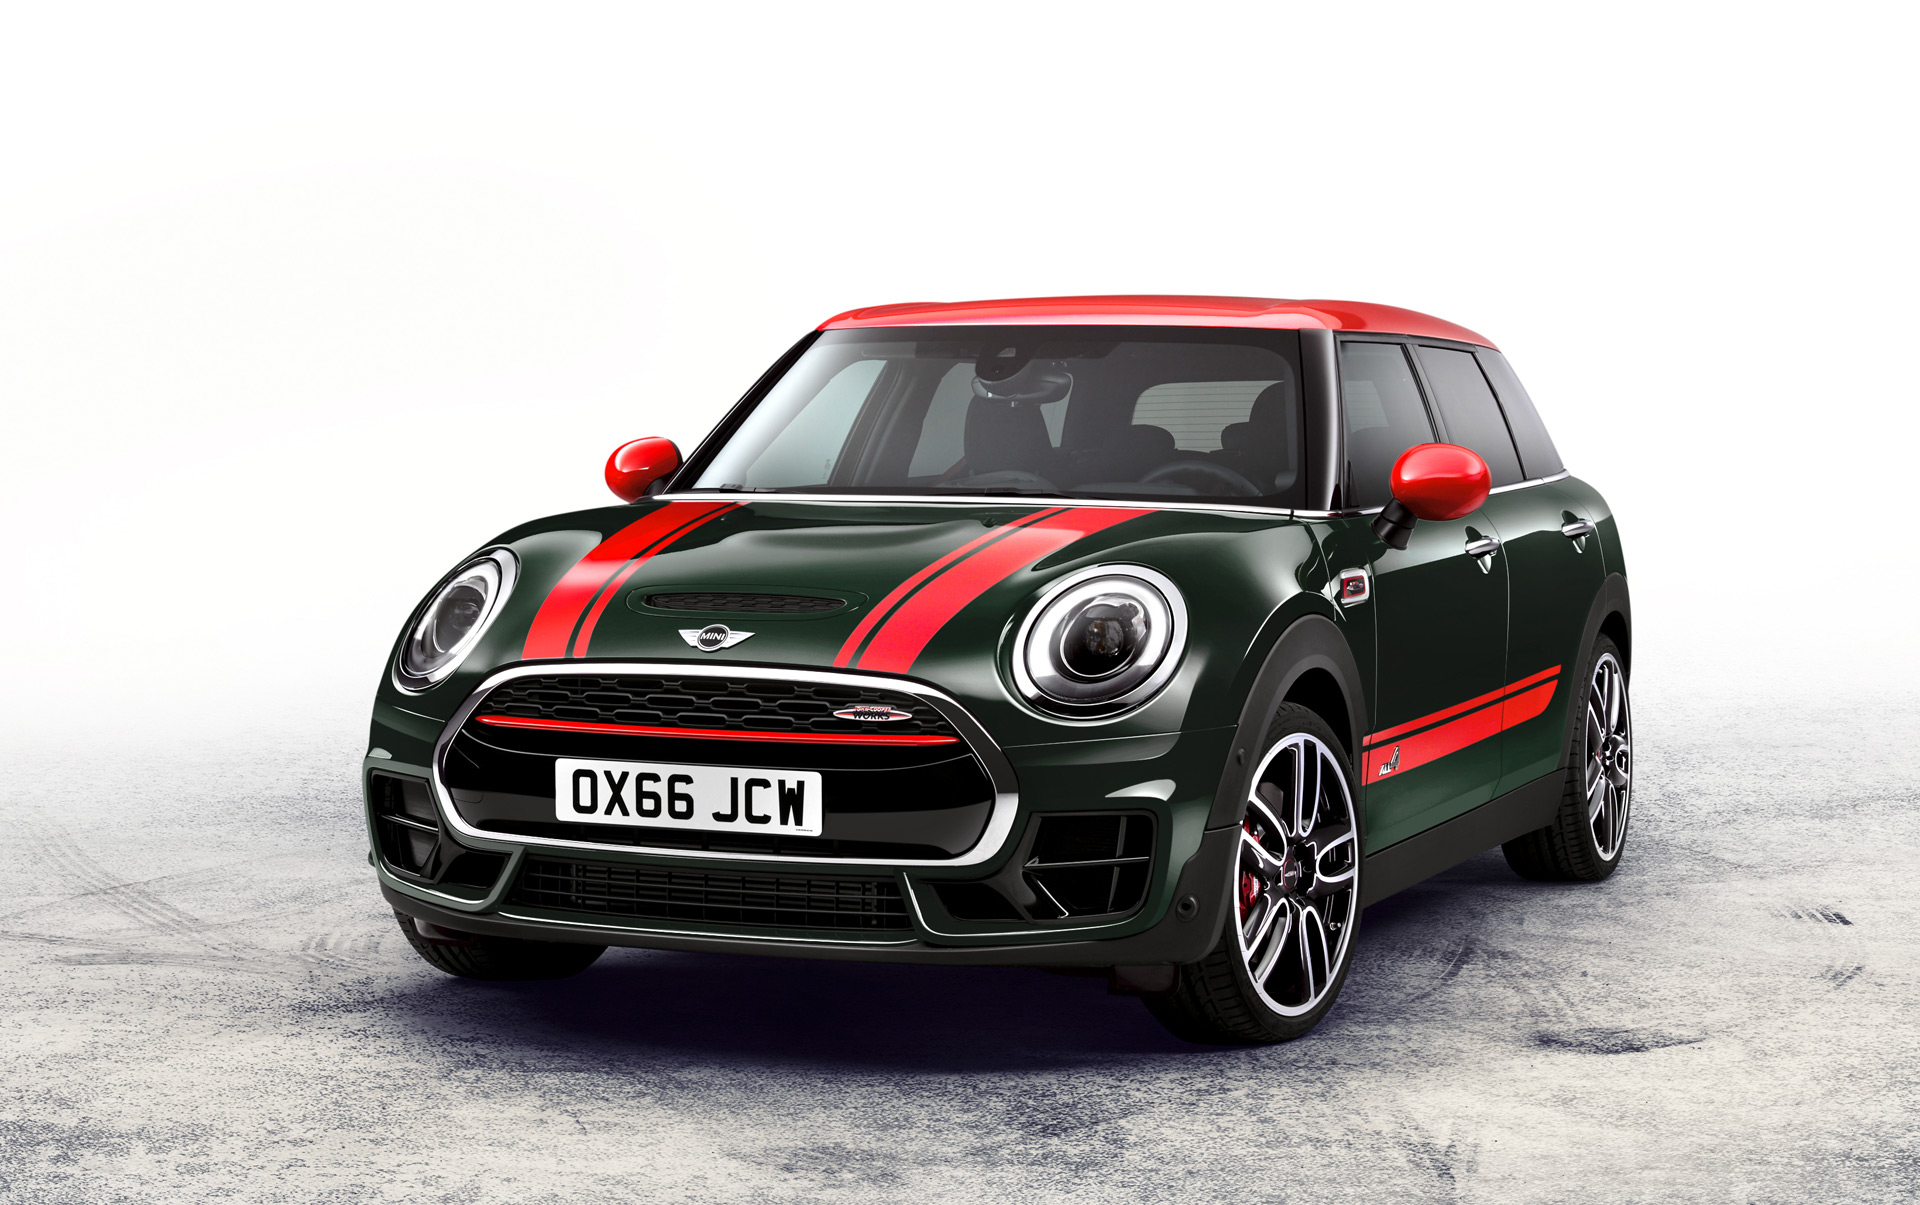 new mini clubman spawns 228-hp john cooper works model